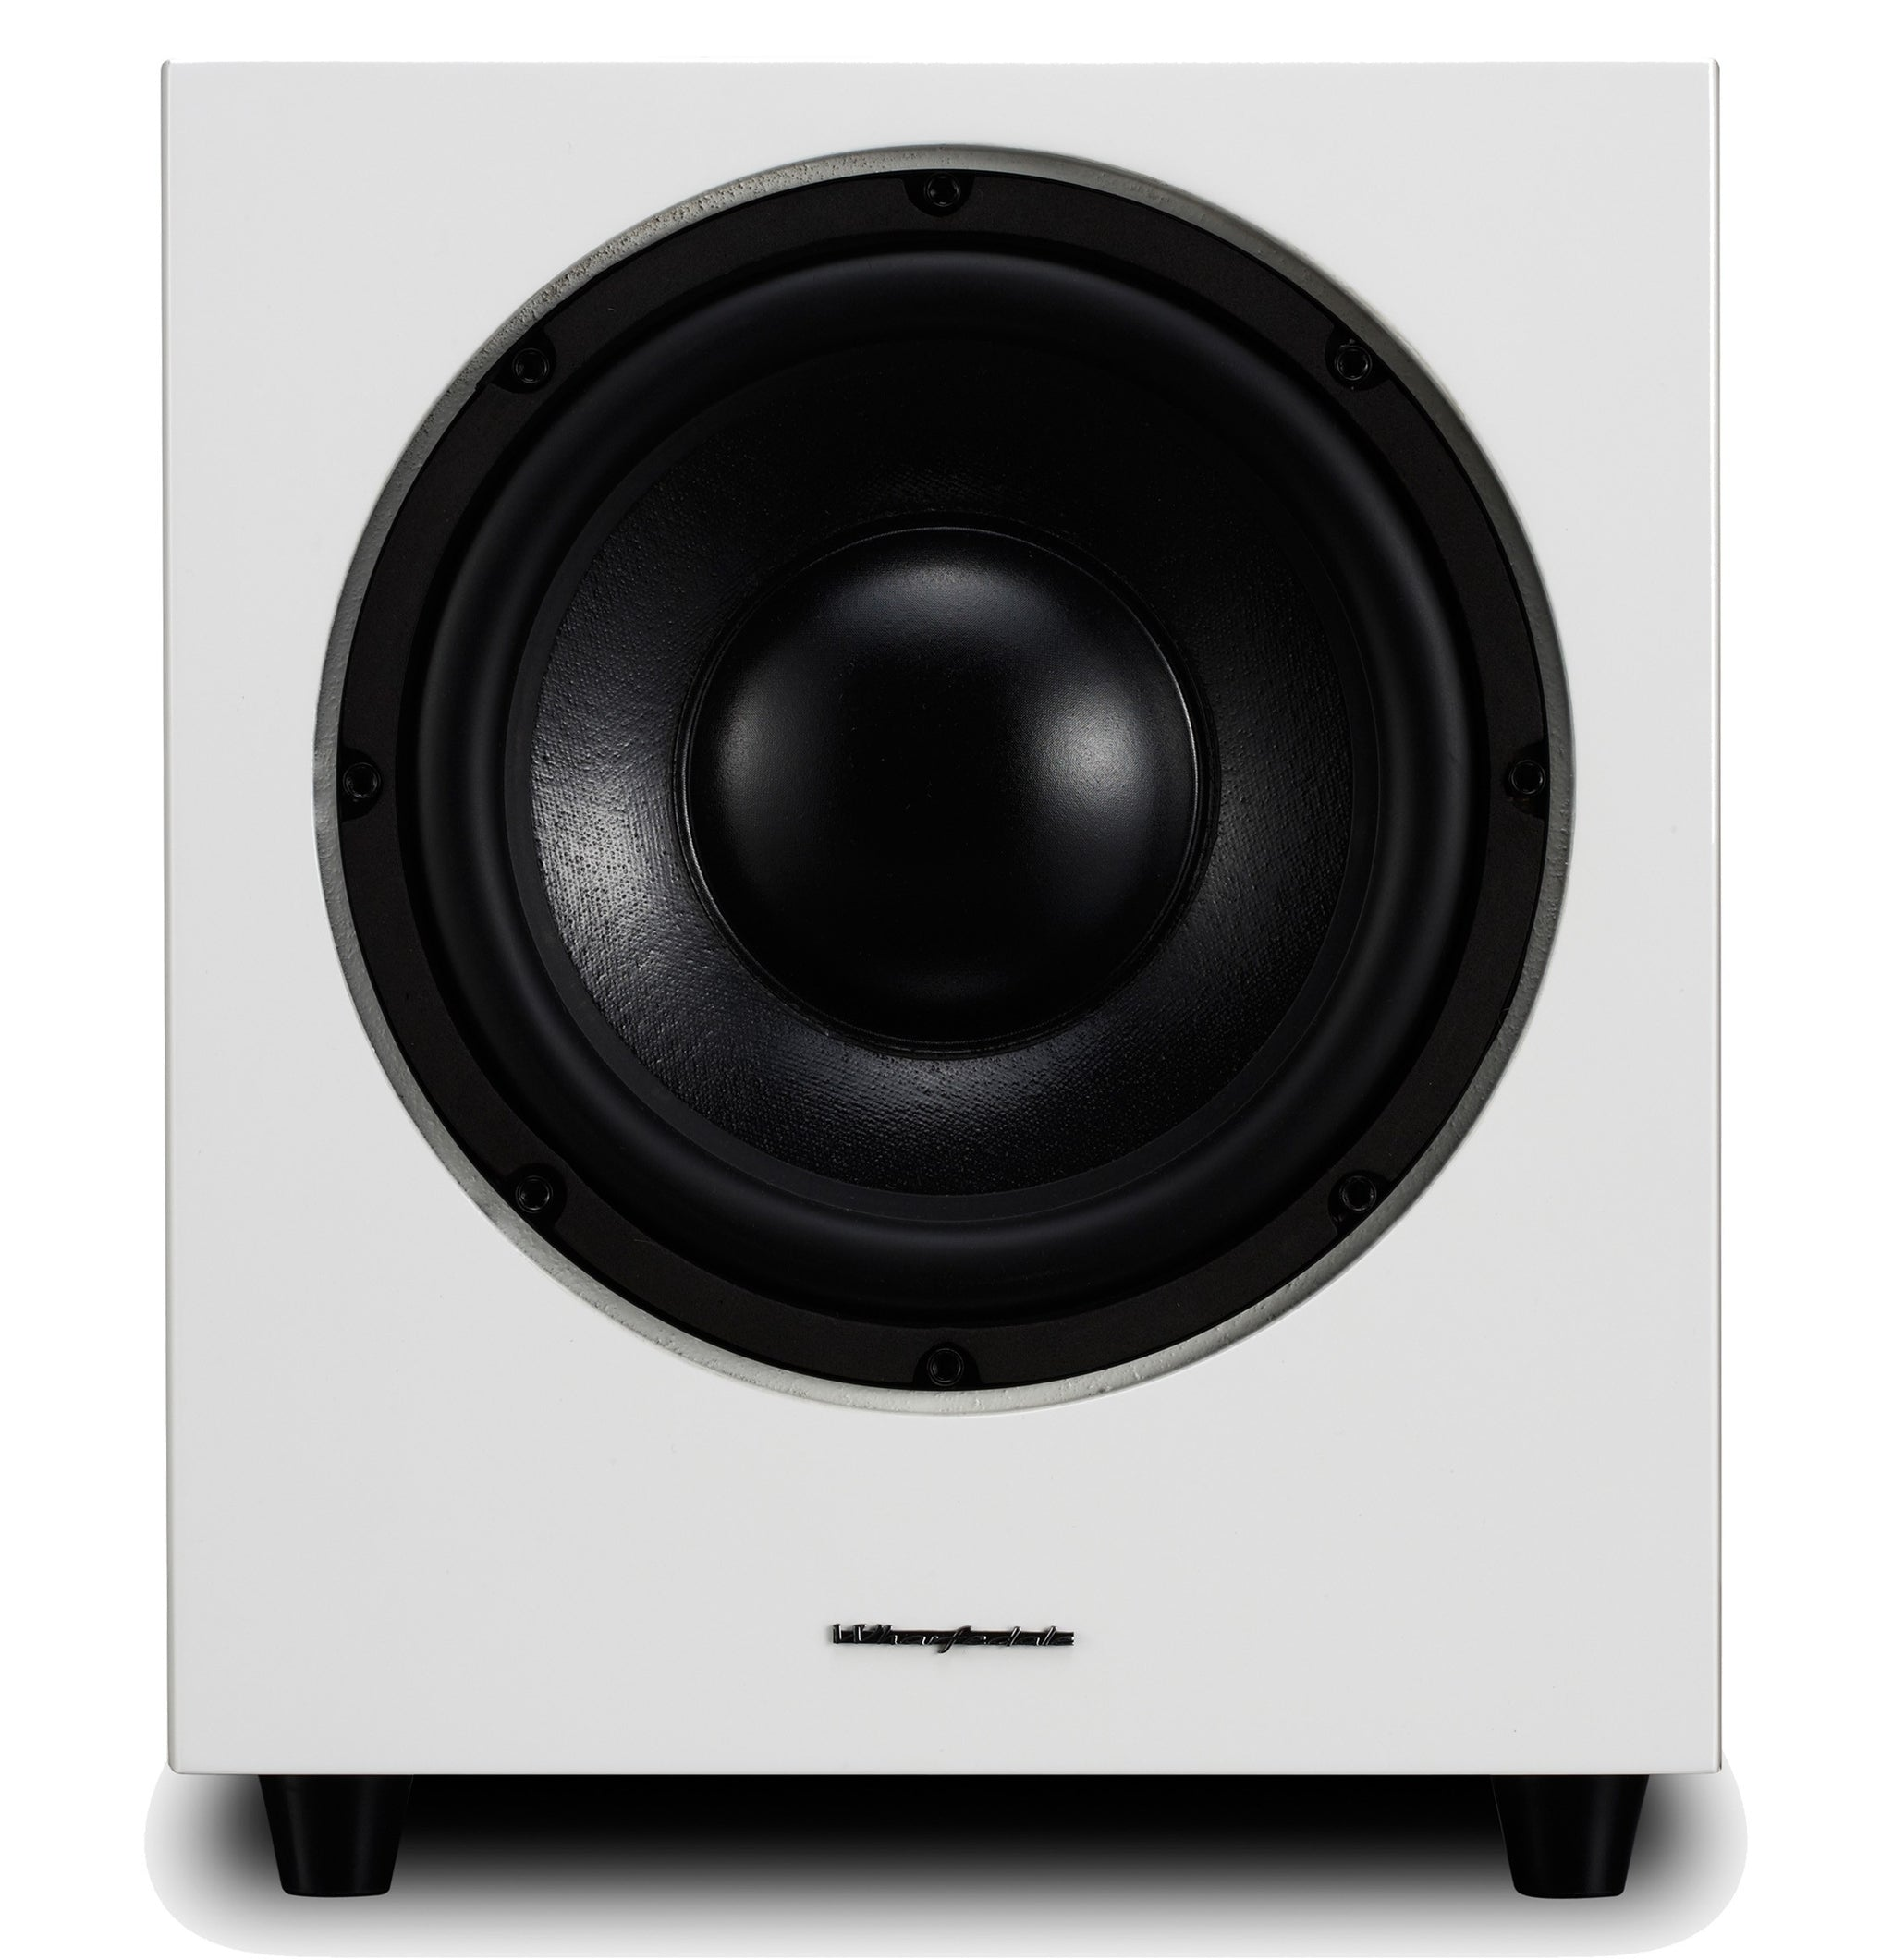 WH-D10 Subwoofer (White)